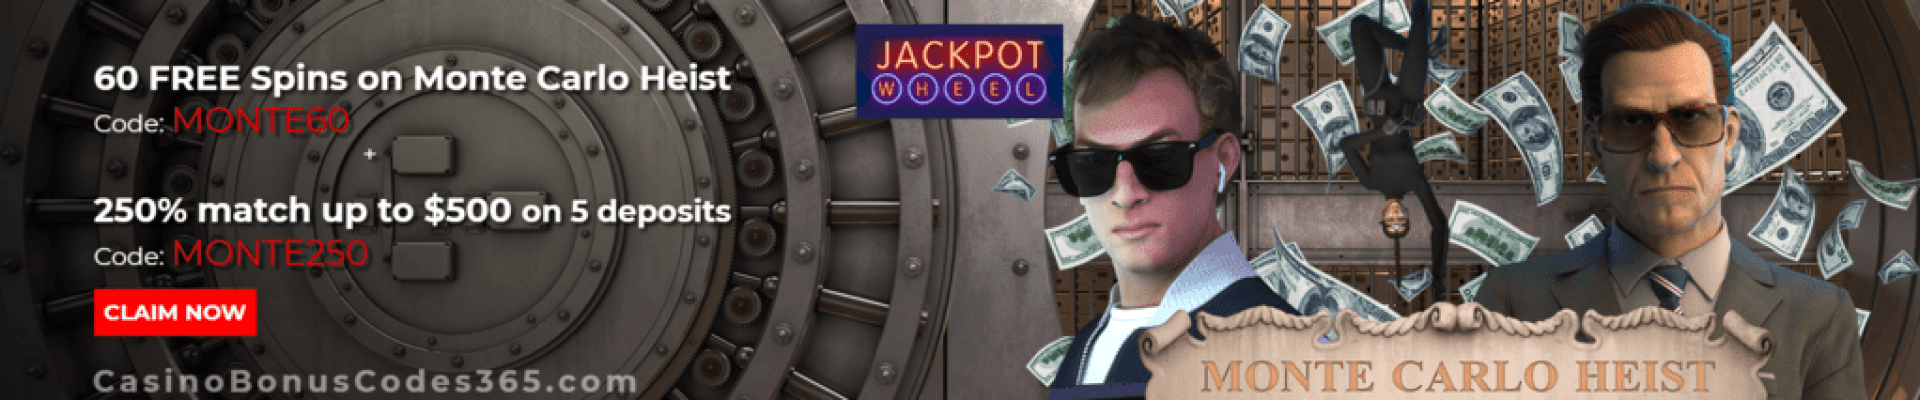 Jackpot Wheel 60 FREE Spins on Saucify Monte Carlo Heist New Saucify 250% Match Game Special Offer